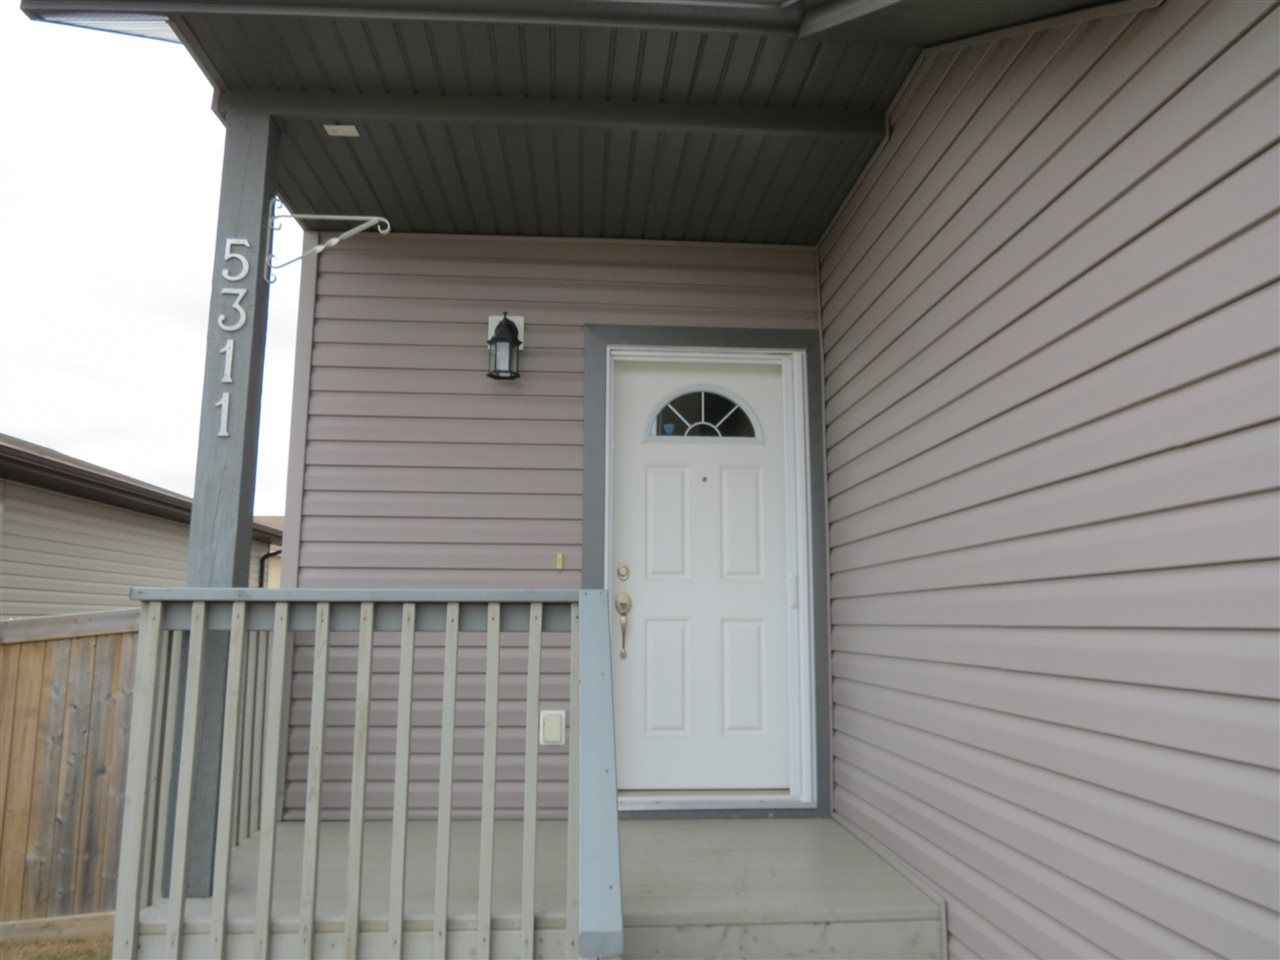 Photo 2: 5311 51 Street: Legal House for sale : MLS(r) # E4058342